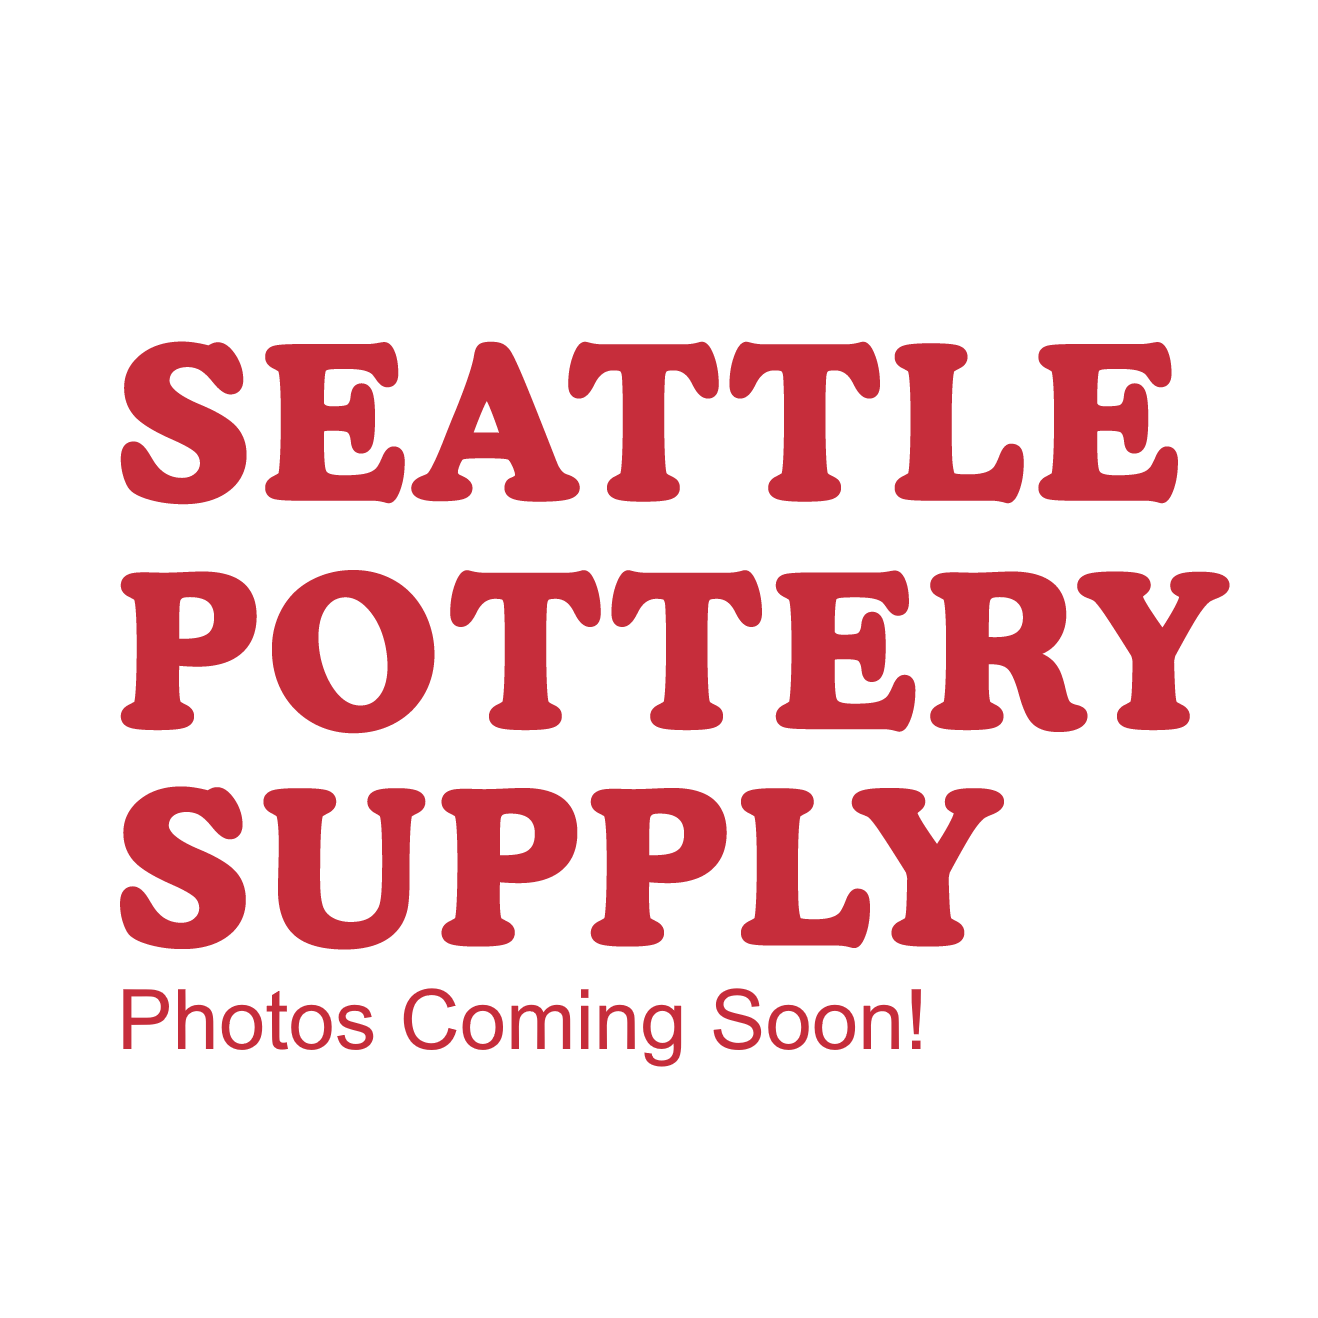 Seattle Pottery Supply